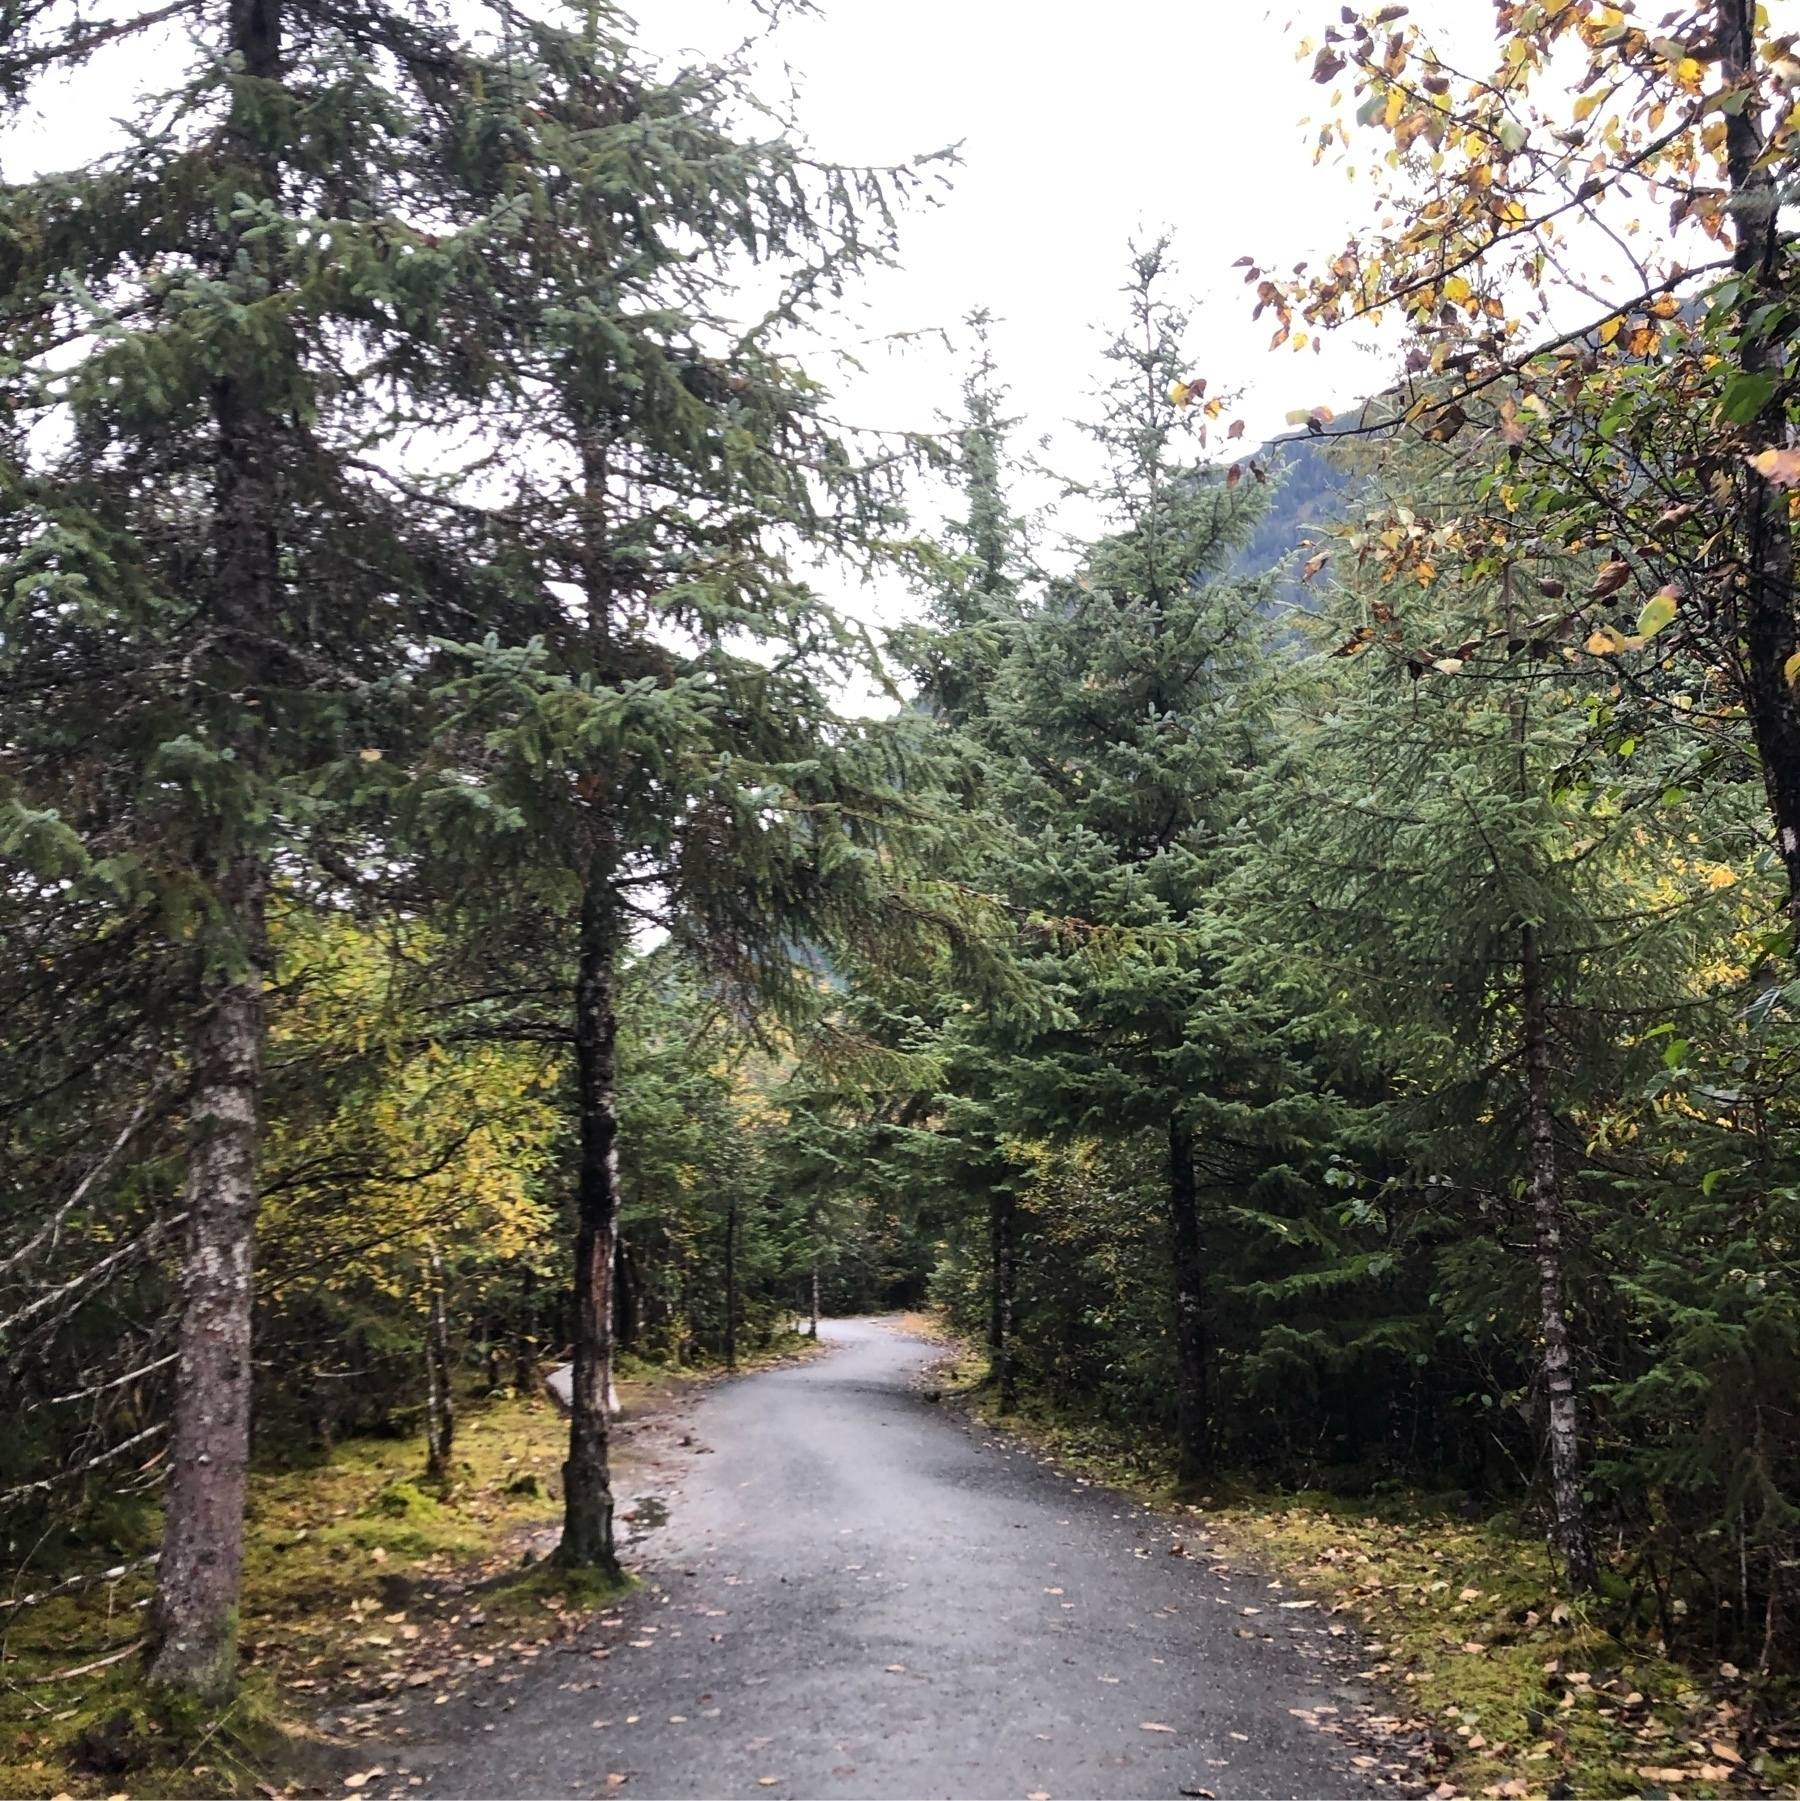 A gravel path zigzags through a forest of evergreen and deciduous trees on a cold day. The deciduous trees are yellow with brown spots. A late-fall rainforest, thick and lush.